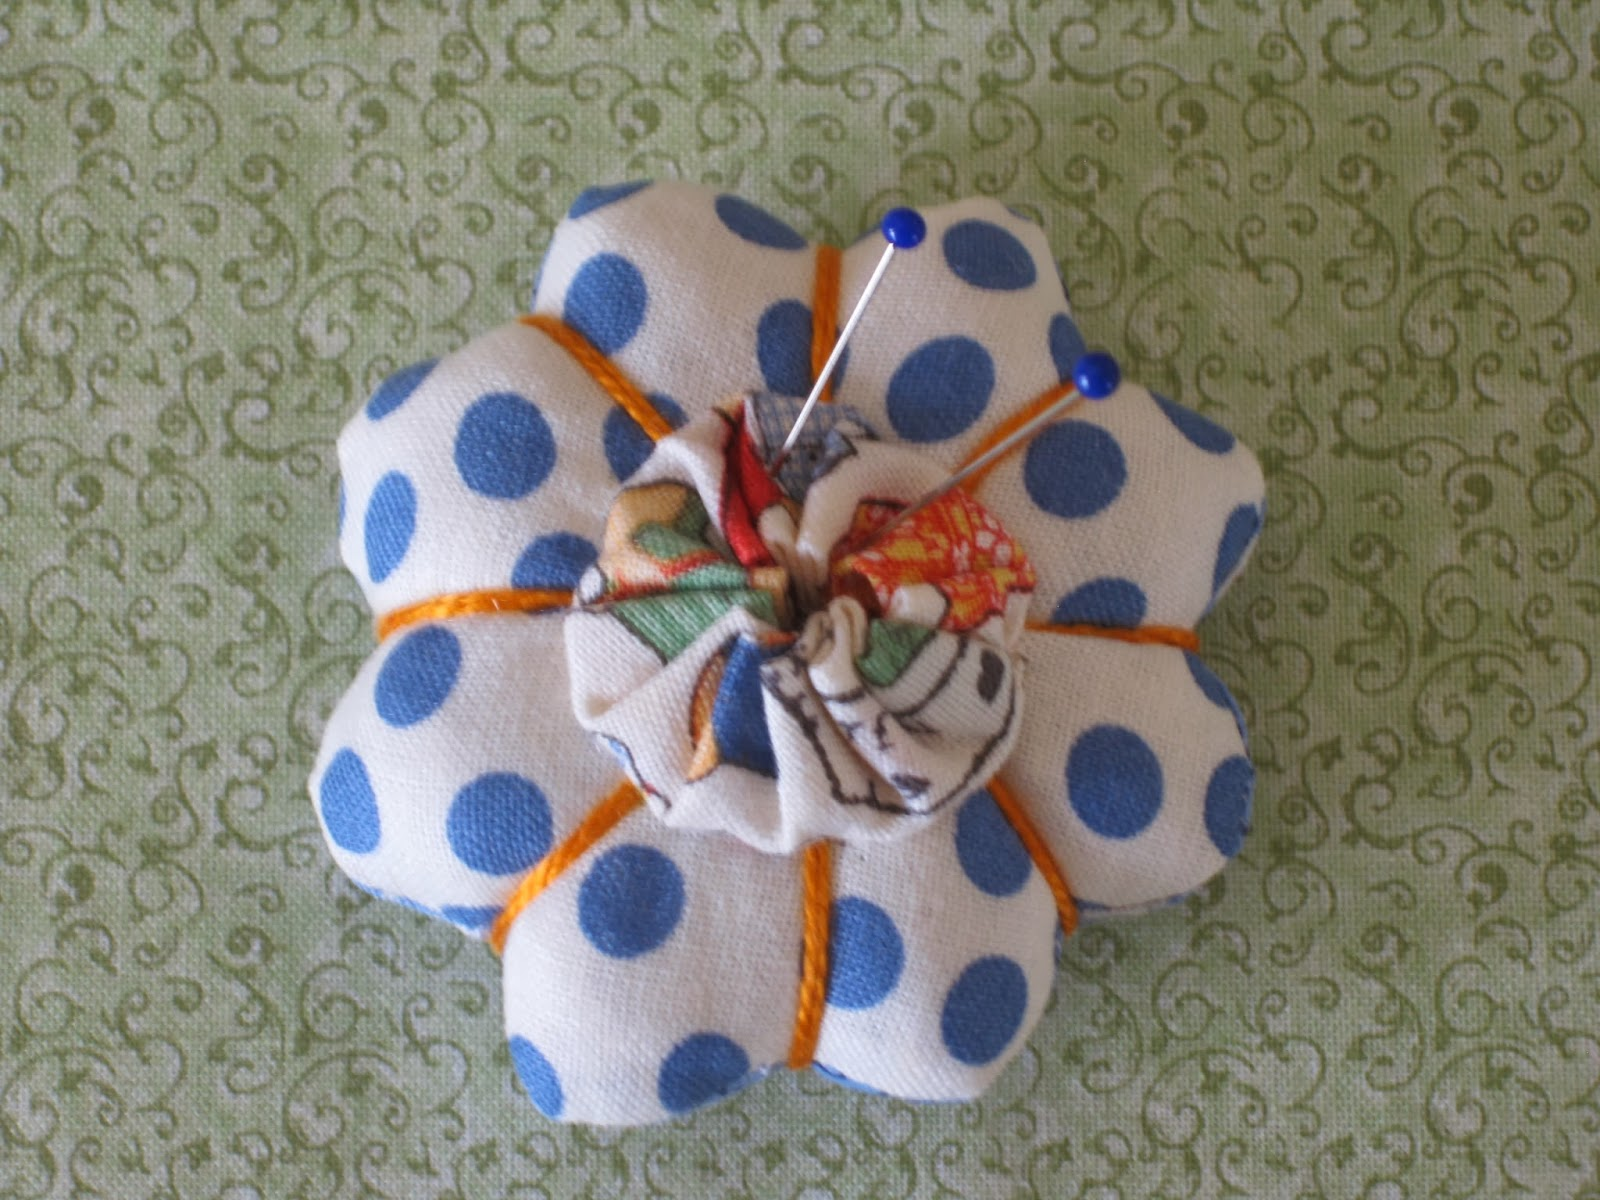 Finished pincushion